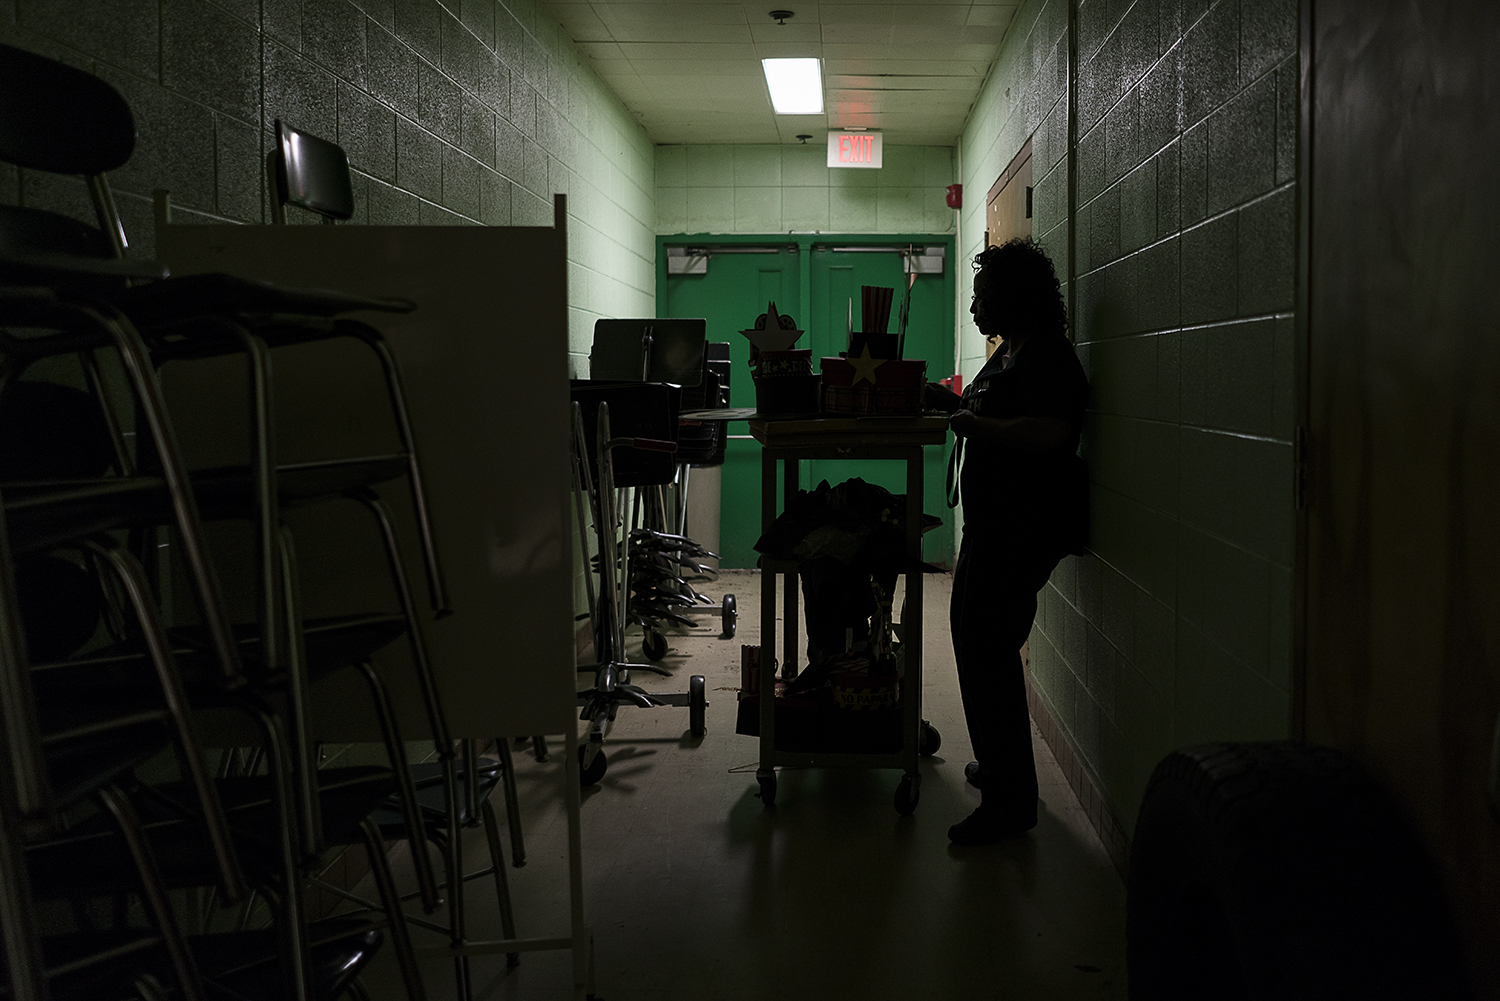 Flint, MI - Monday, October 16, 2017: In a narrow, dimly lit corridor between the band room and auditorium at Flint Northwestern High School, Flint resident Sheila Miller-Graham squeezes between her cart loaded with decorations and the wall to unlock a door to the stage. Miller-Graham has a full plate with her responsibilities as the Director of Creative Expressions Dance Studio and educator at the high school, often working more than 80 hours a week.